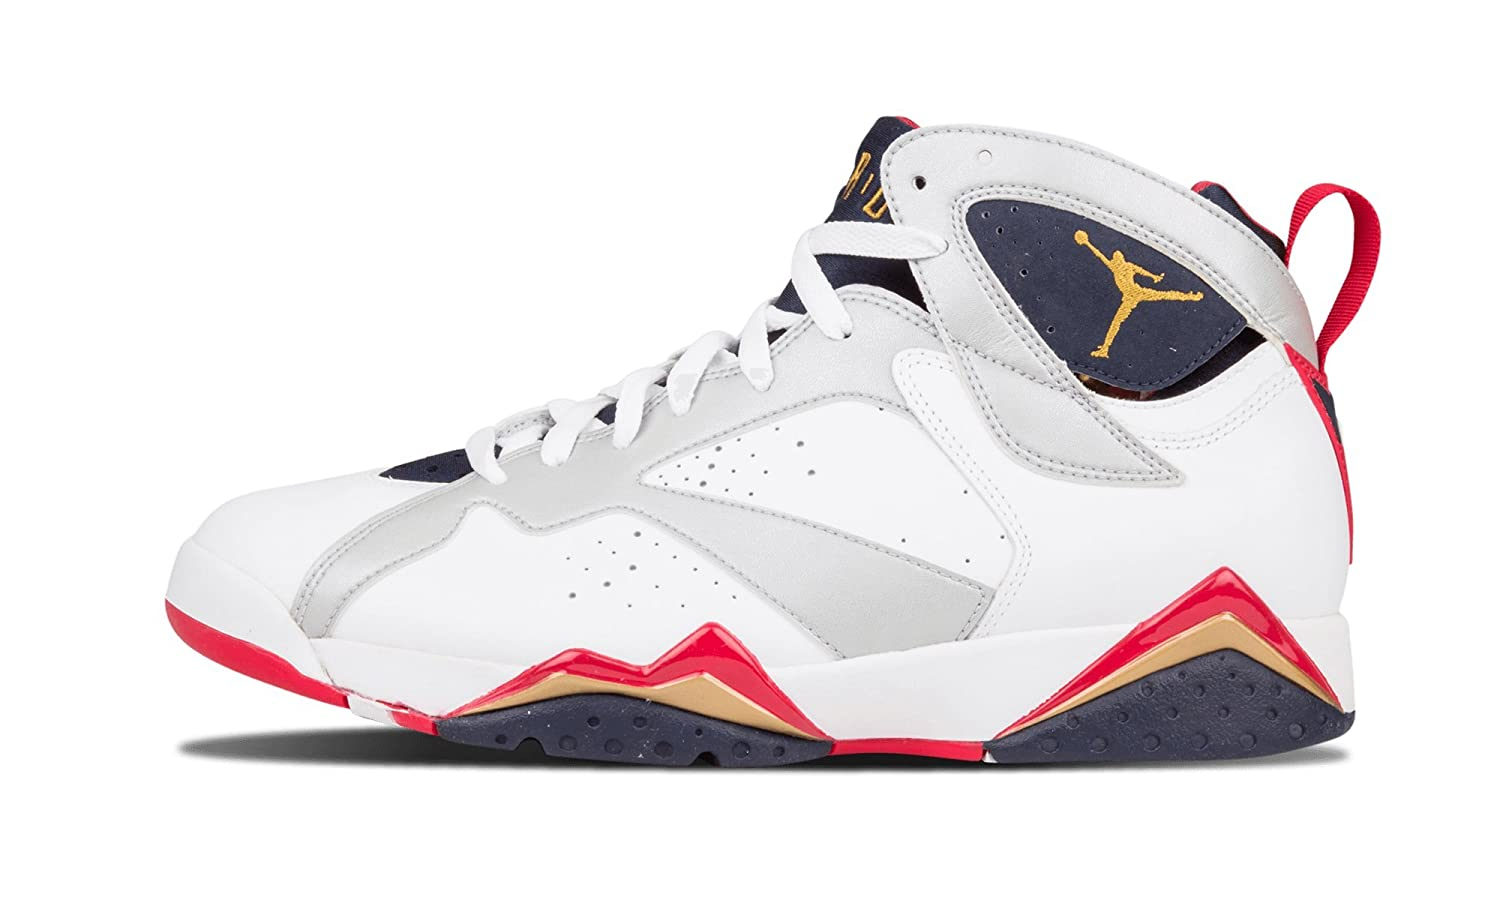 s Air Jordan 7 Retro Olympic Leder-Basketball-Schuhe  44 EU|Wei?